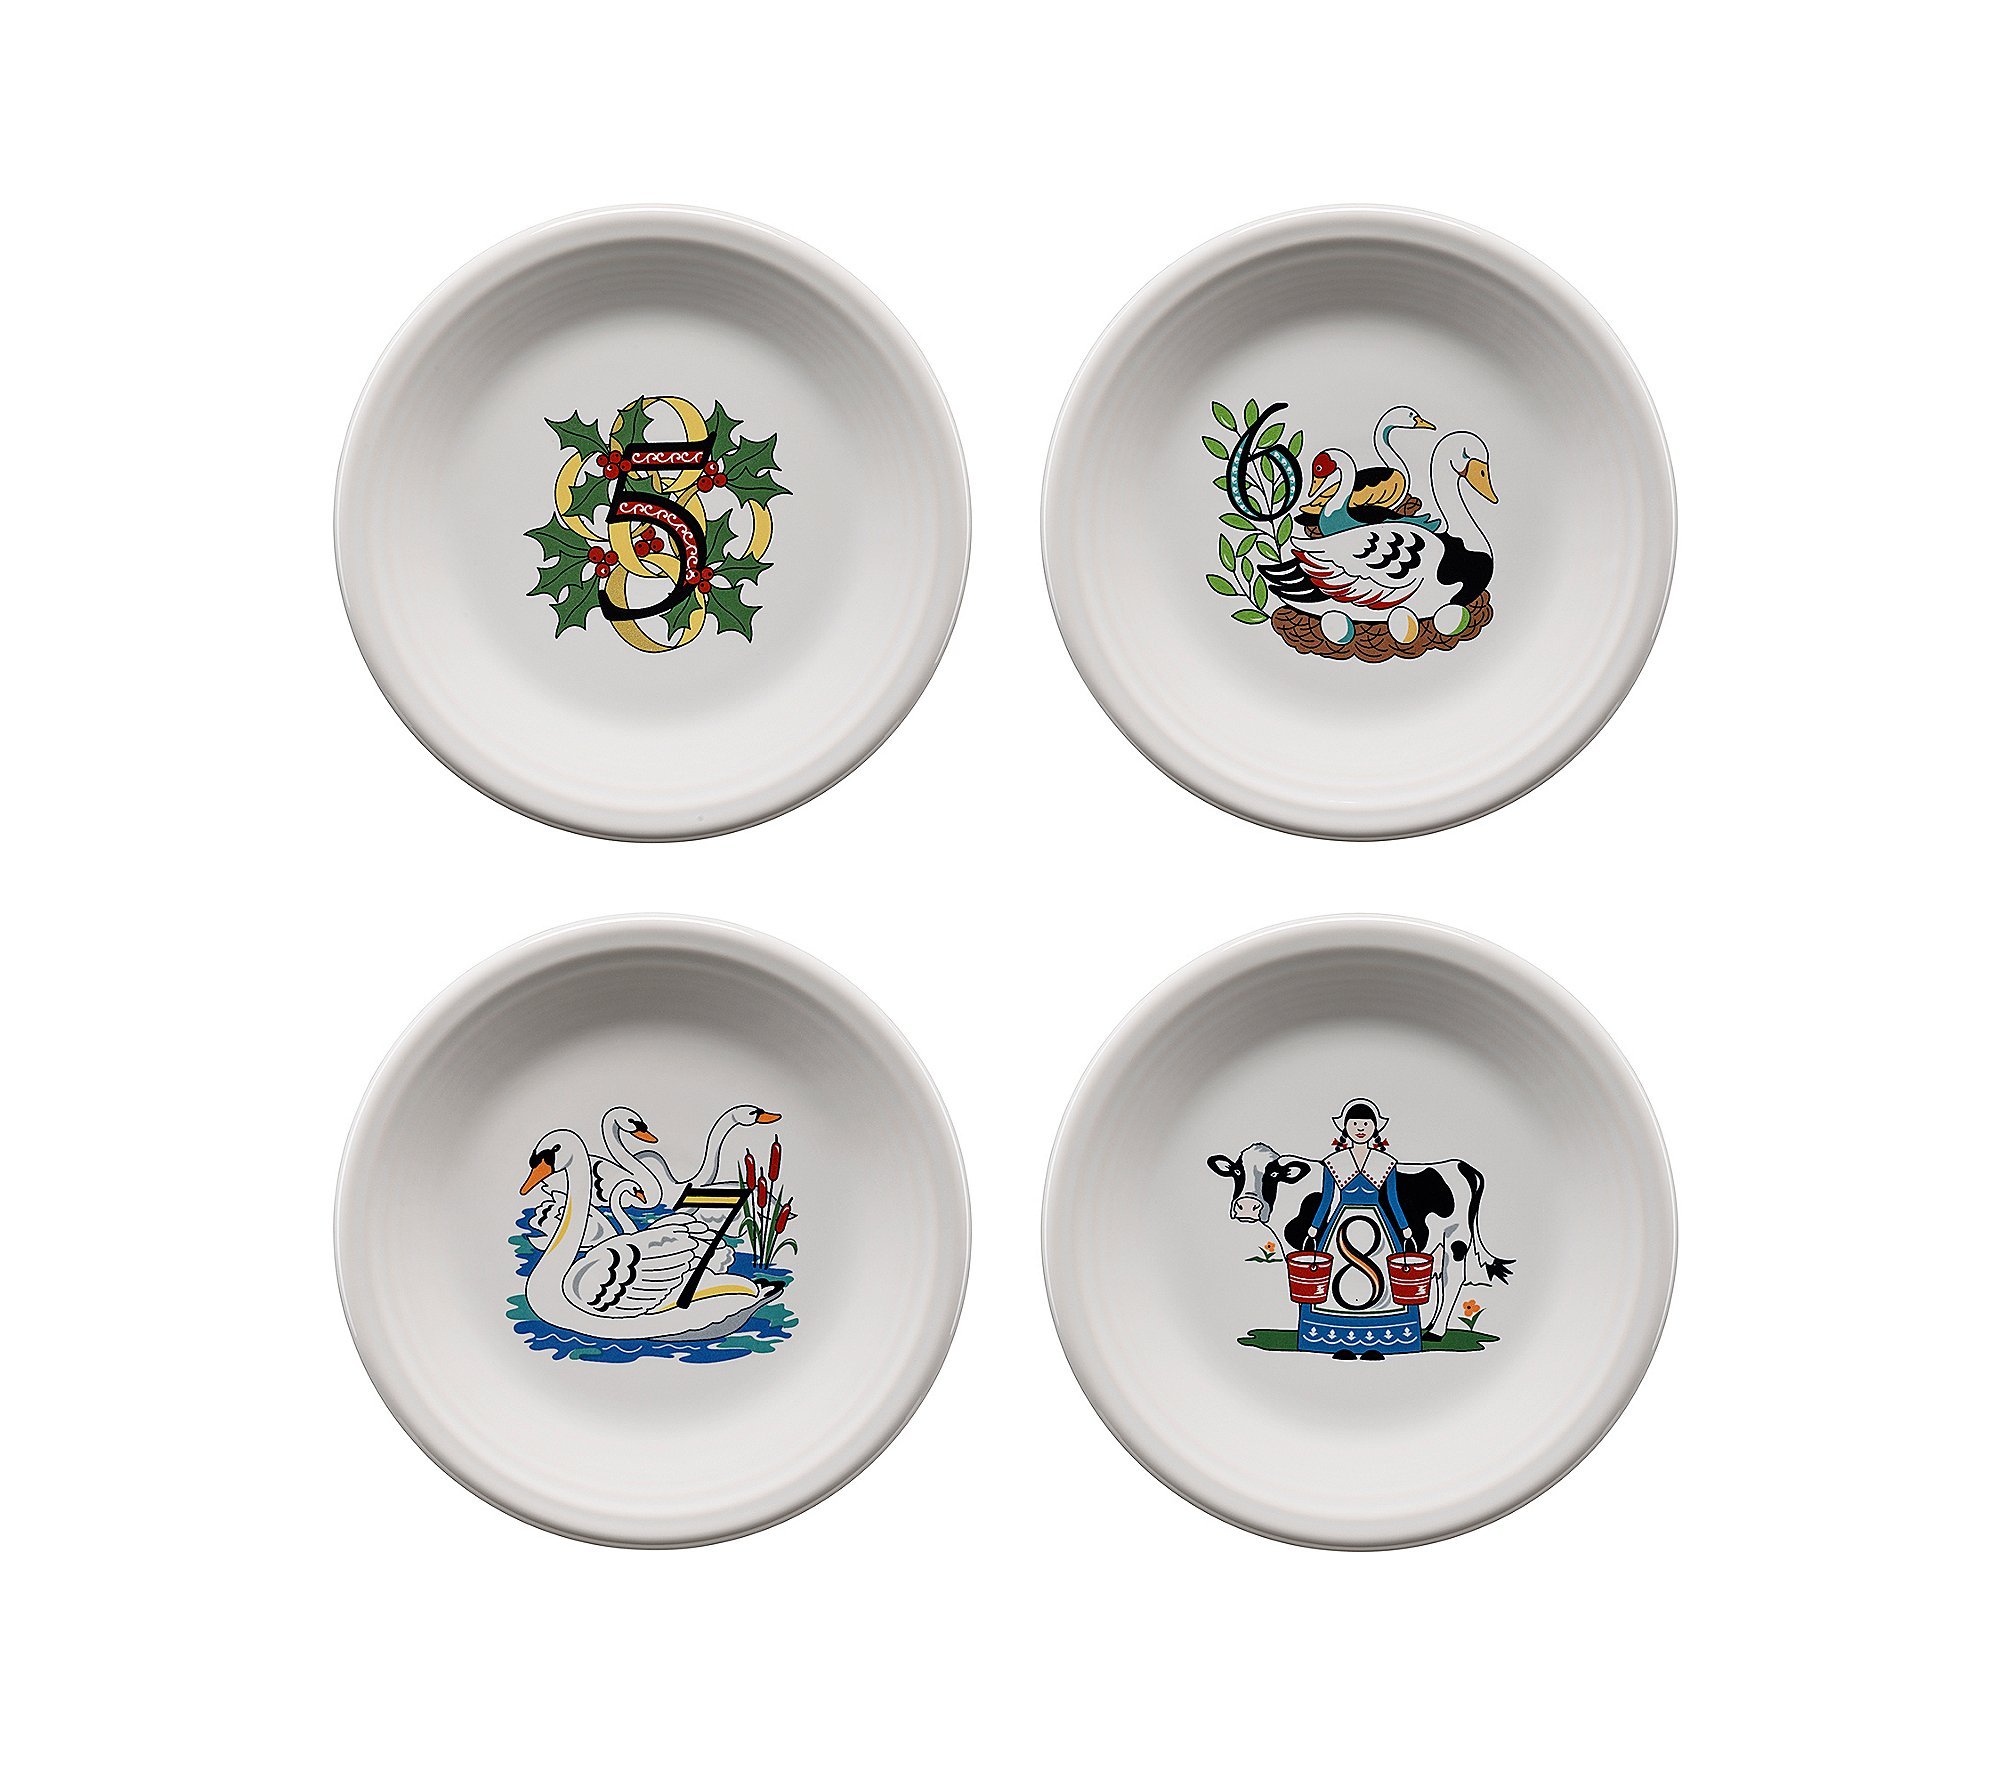 Fiesta 12 Days of Christmas Set of 4 Days 5-8 Plates